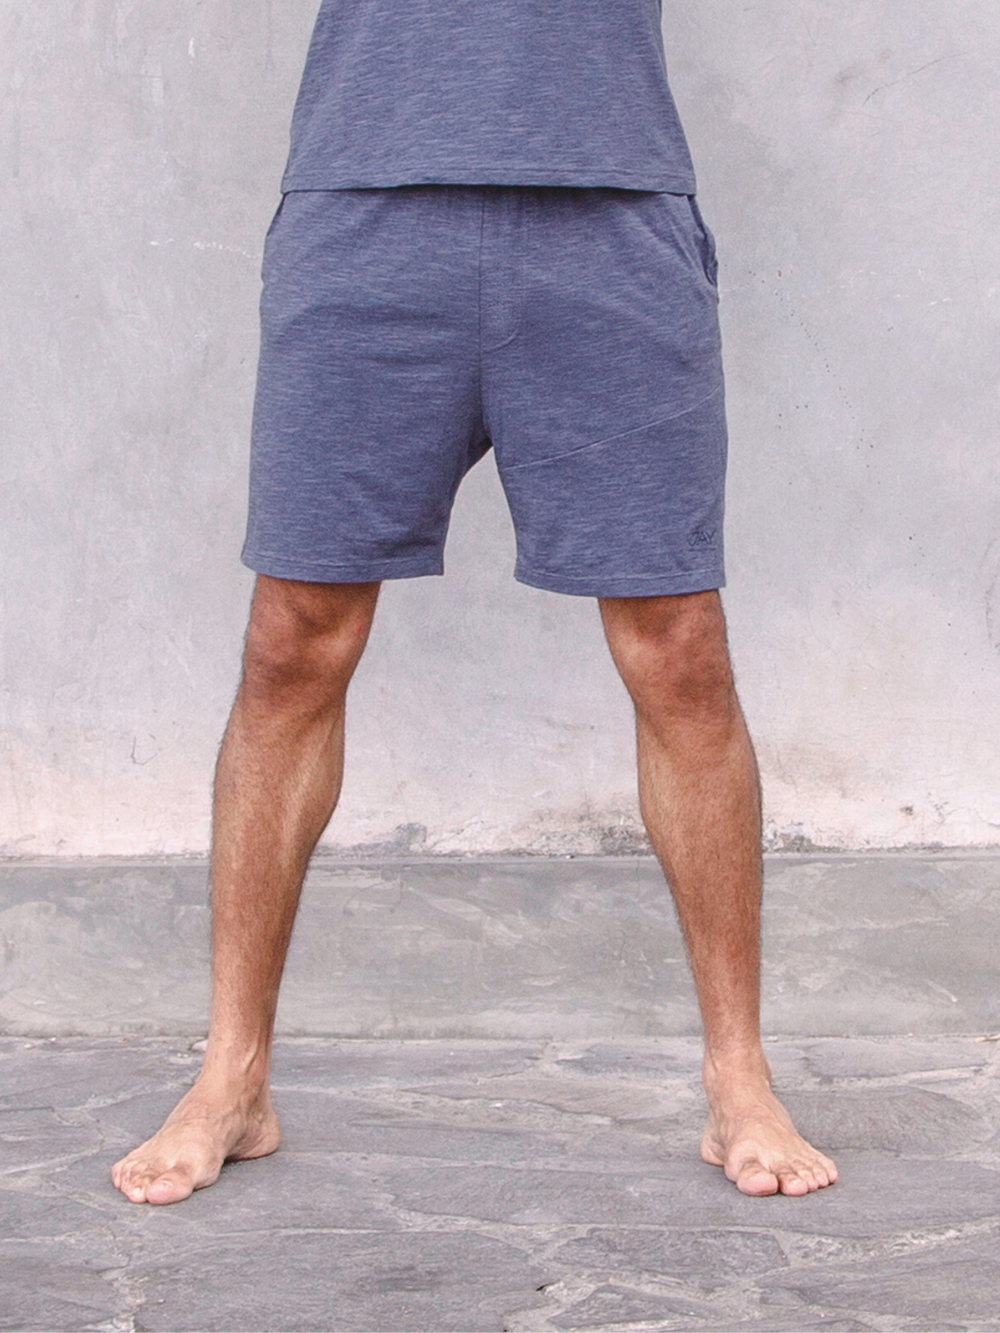 short jaya yogashopping